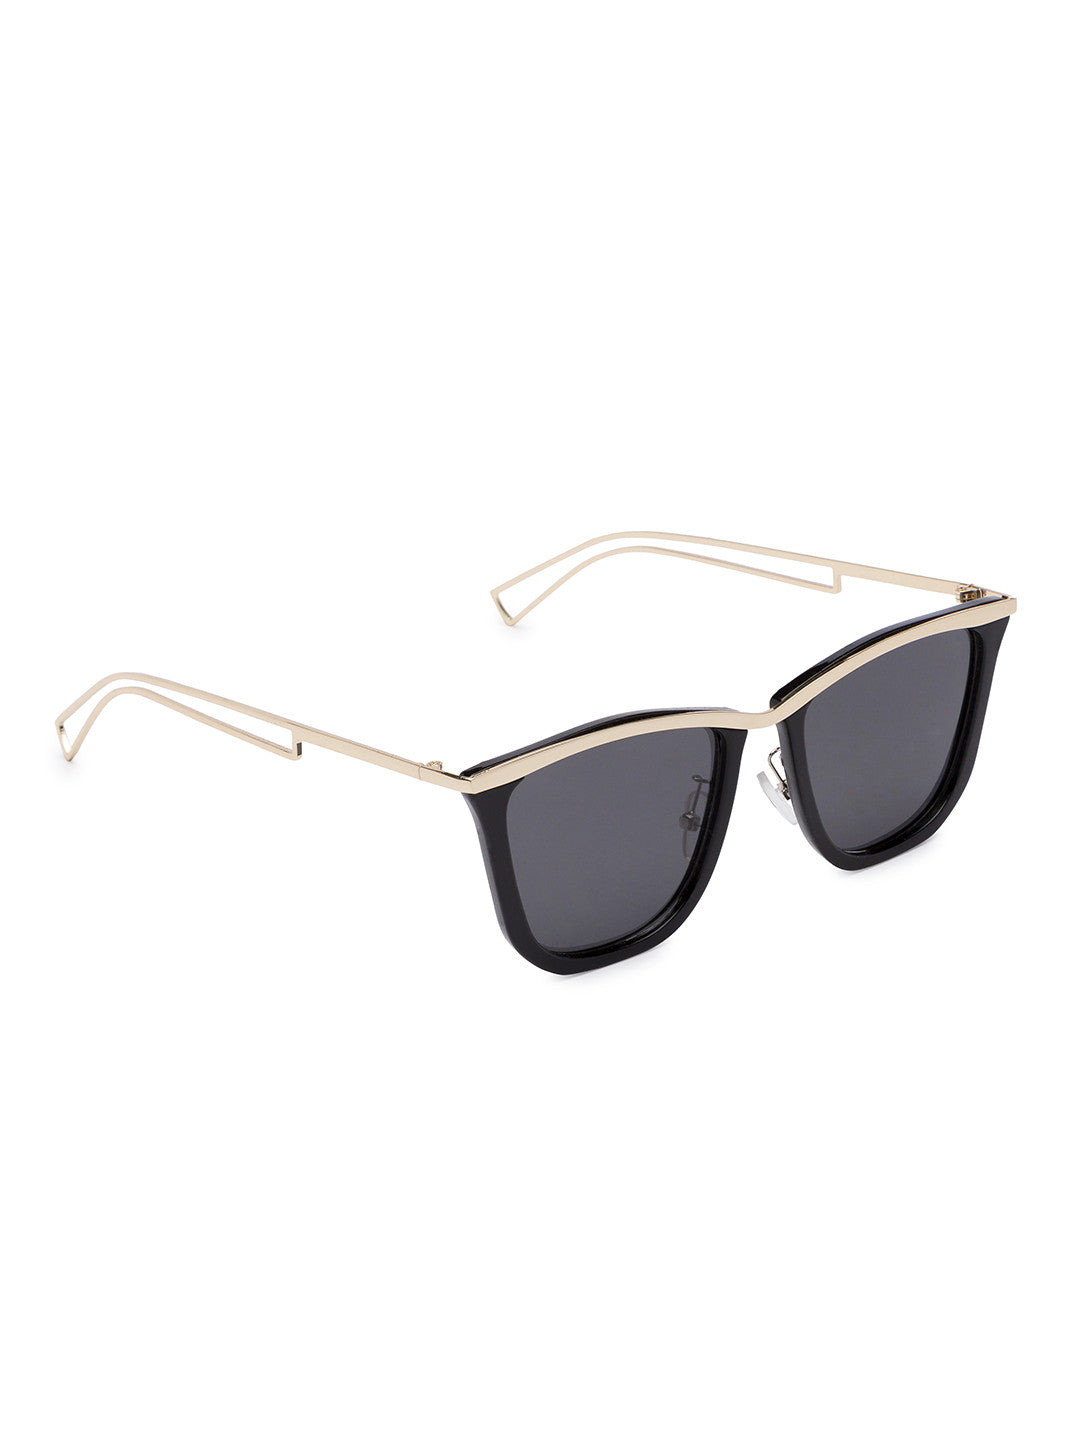 Black Full Rim Wayfarer Sunglasses-2